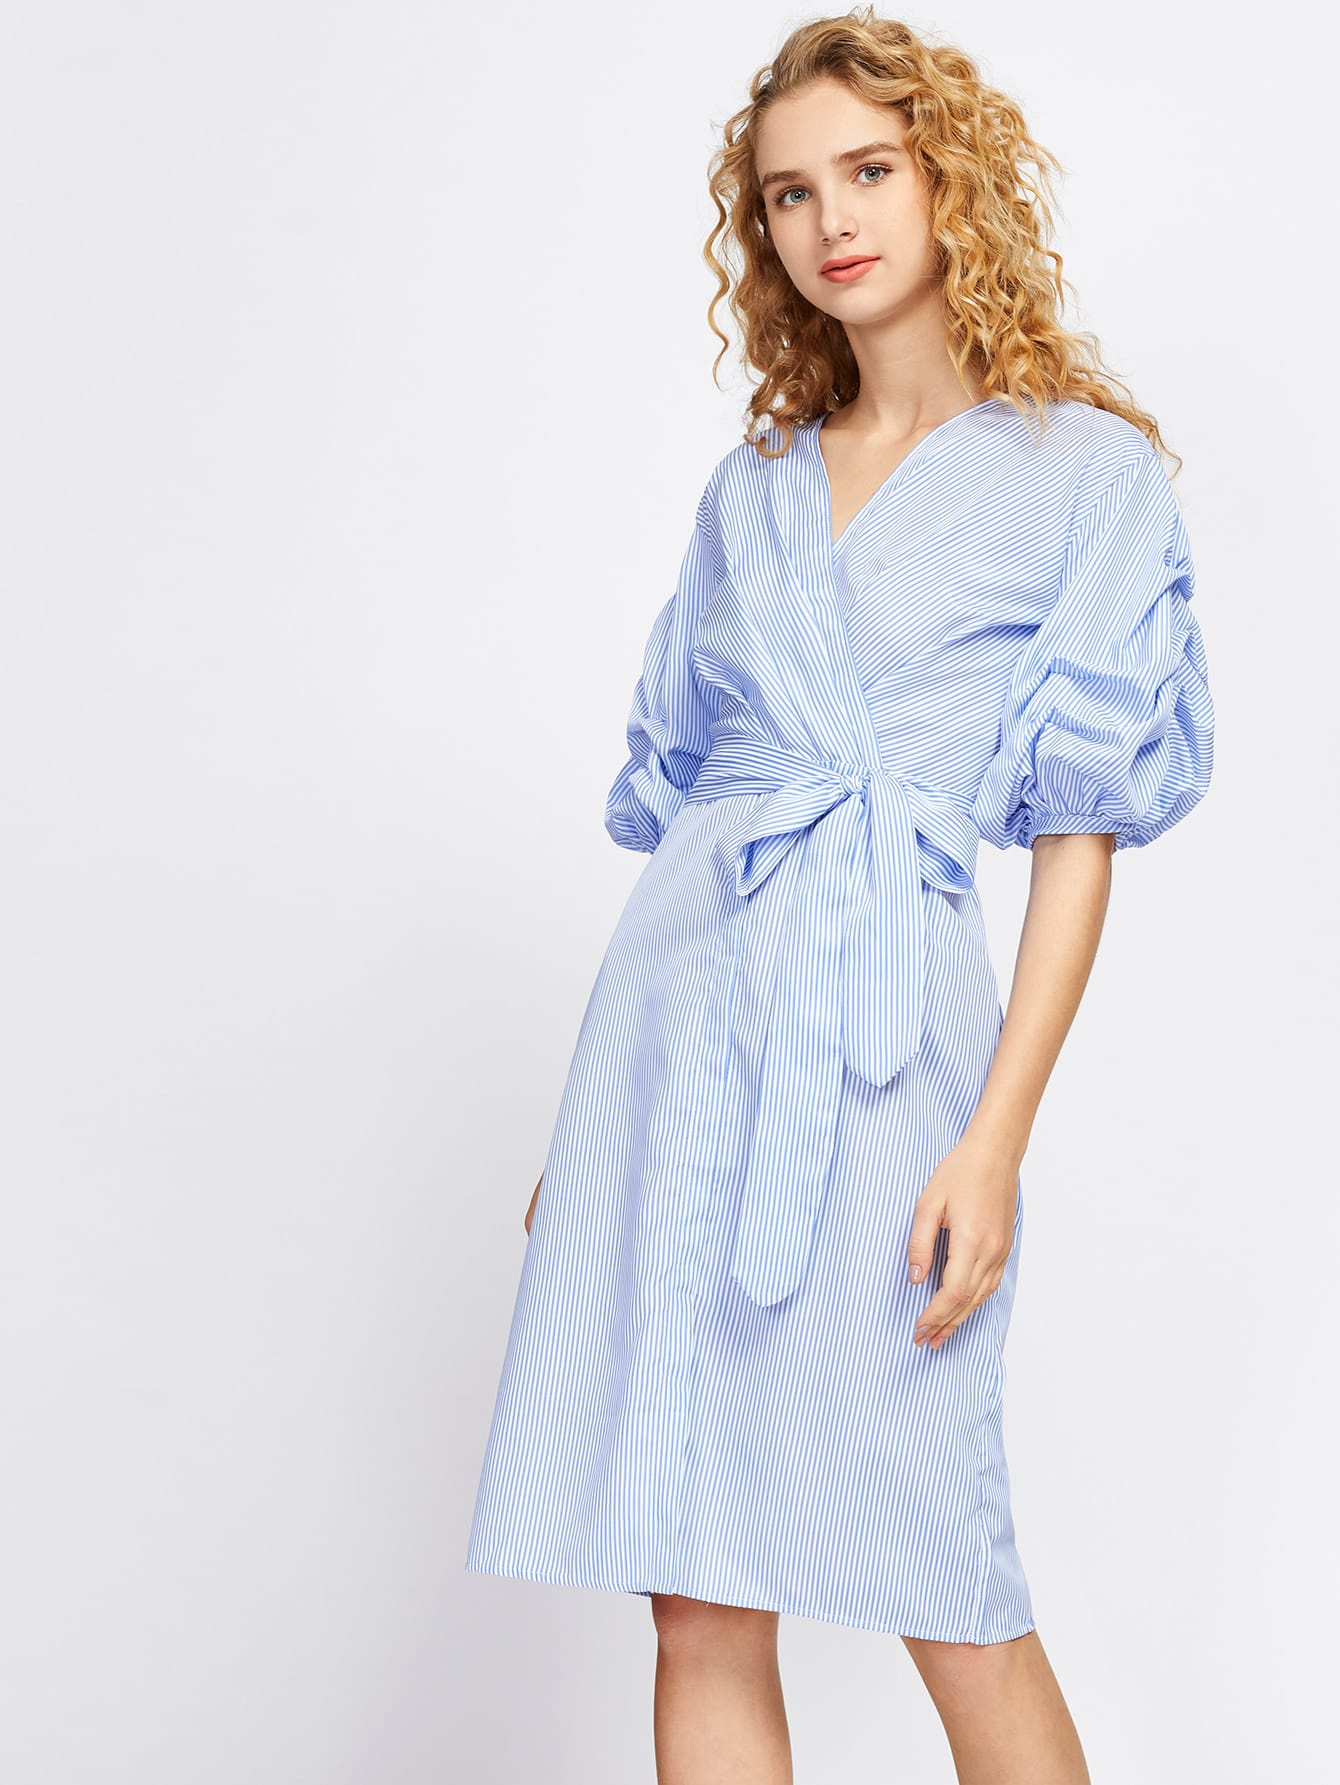 Vertical Striped Ruched Sleeve Surplice Dress dress170629104